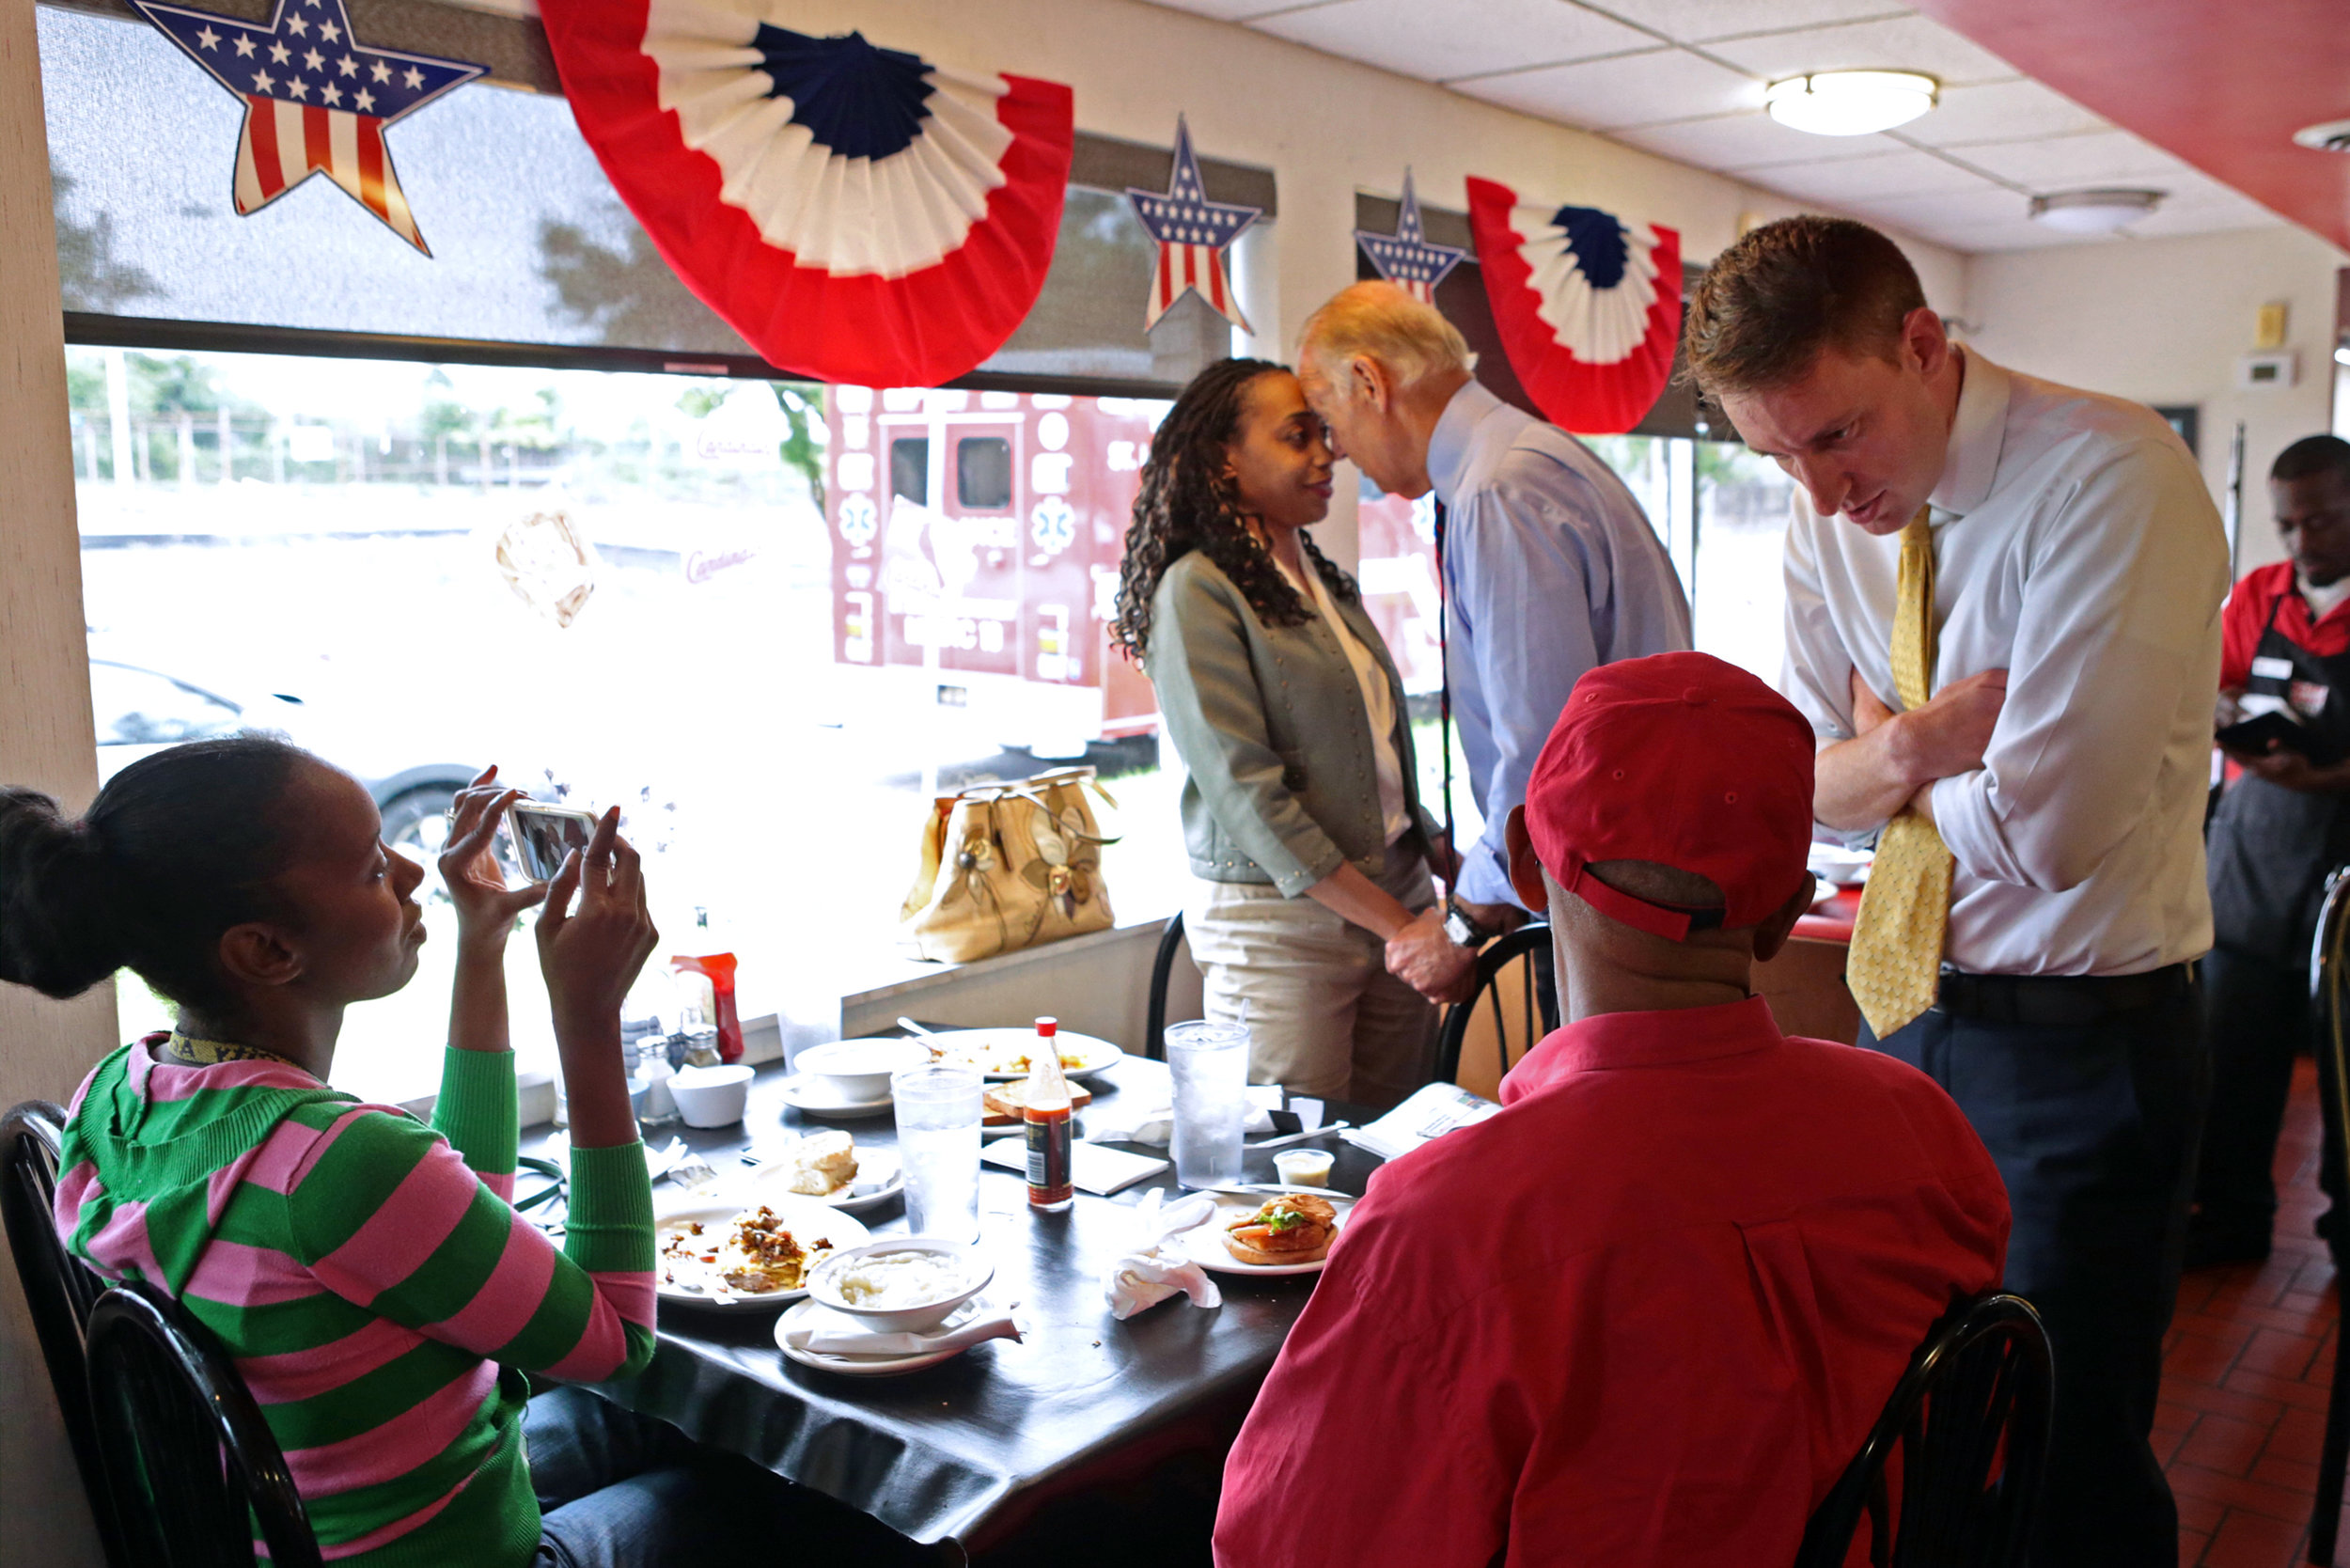 Missouri Secretary of State Jason Kander (far right) talks to Carl Bruce, of St. Louis, while Vice President Joe Biden greets Tina Grimes, of St. Louis, during a stop by Goody Goody Diner in north St. Louis on Friday, Sept. 9, 2016. Vice President Biden was in town to talk about technology and jobs creation at LaunchCode.